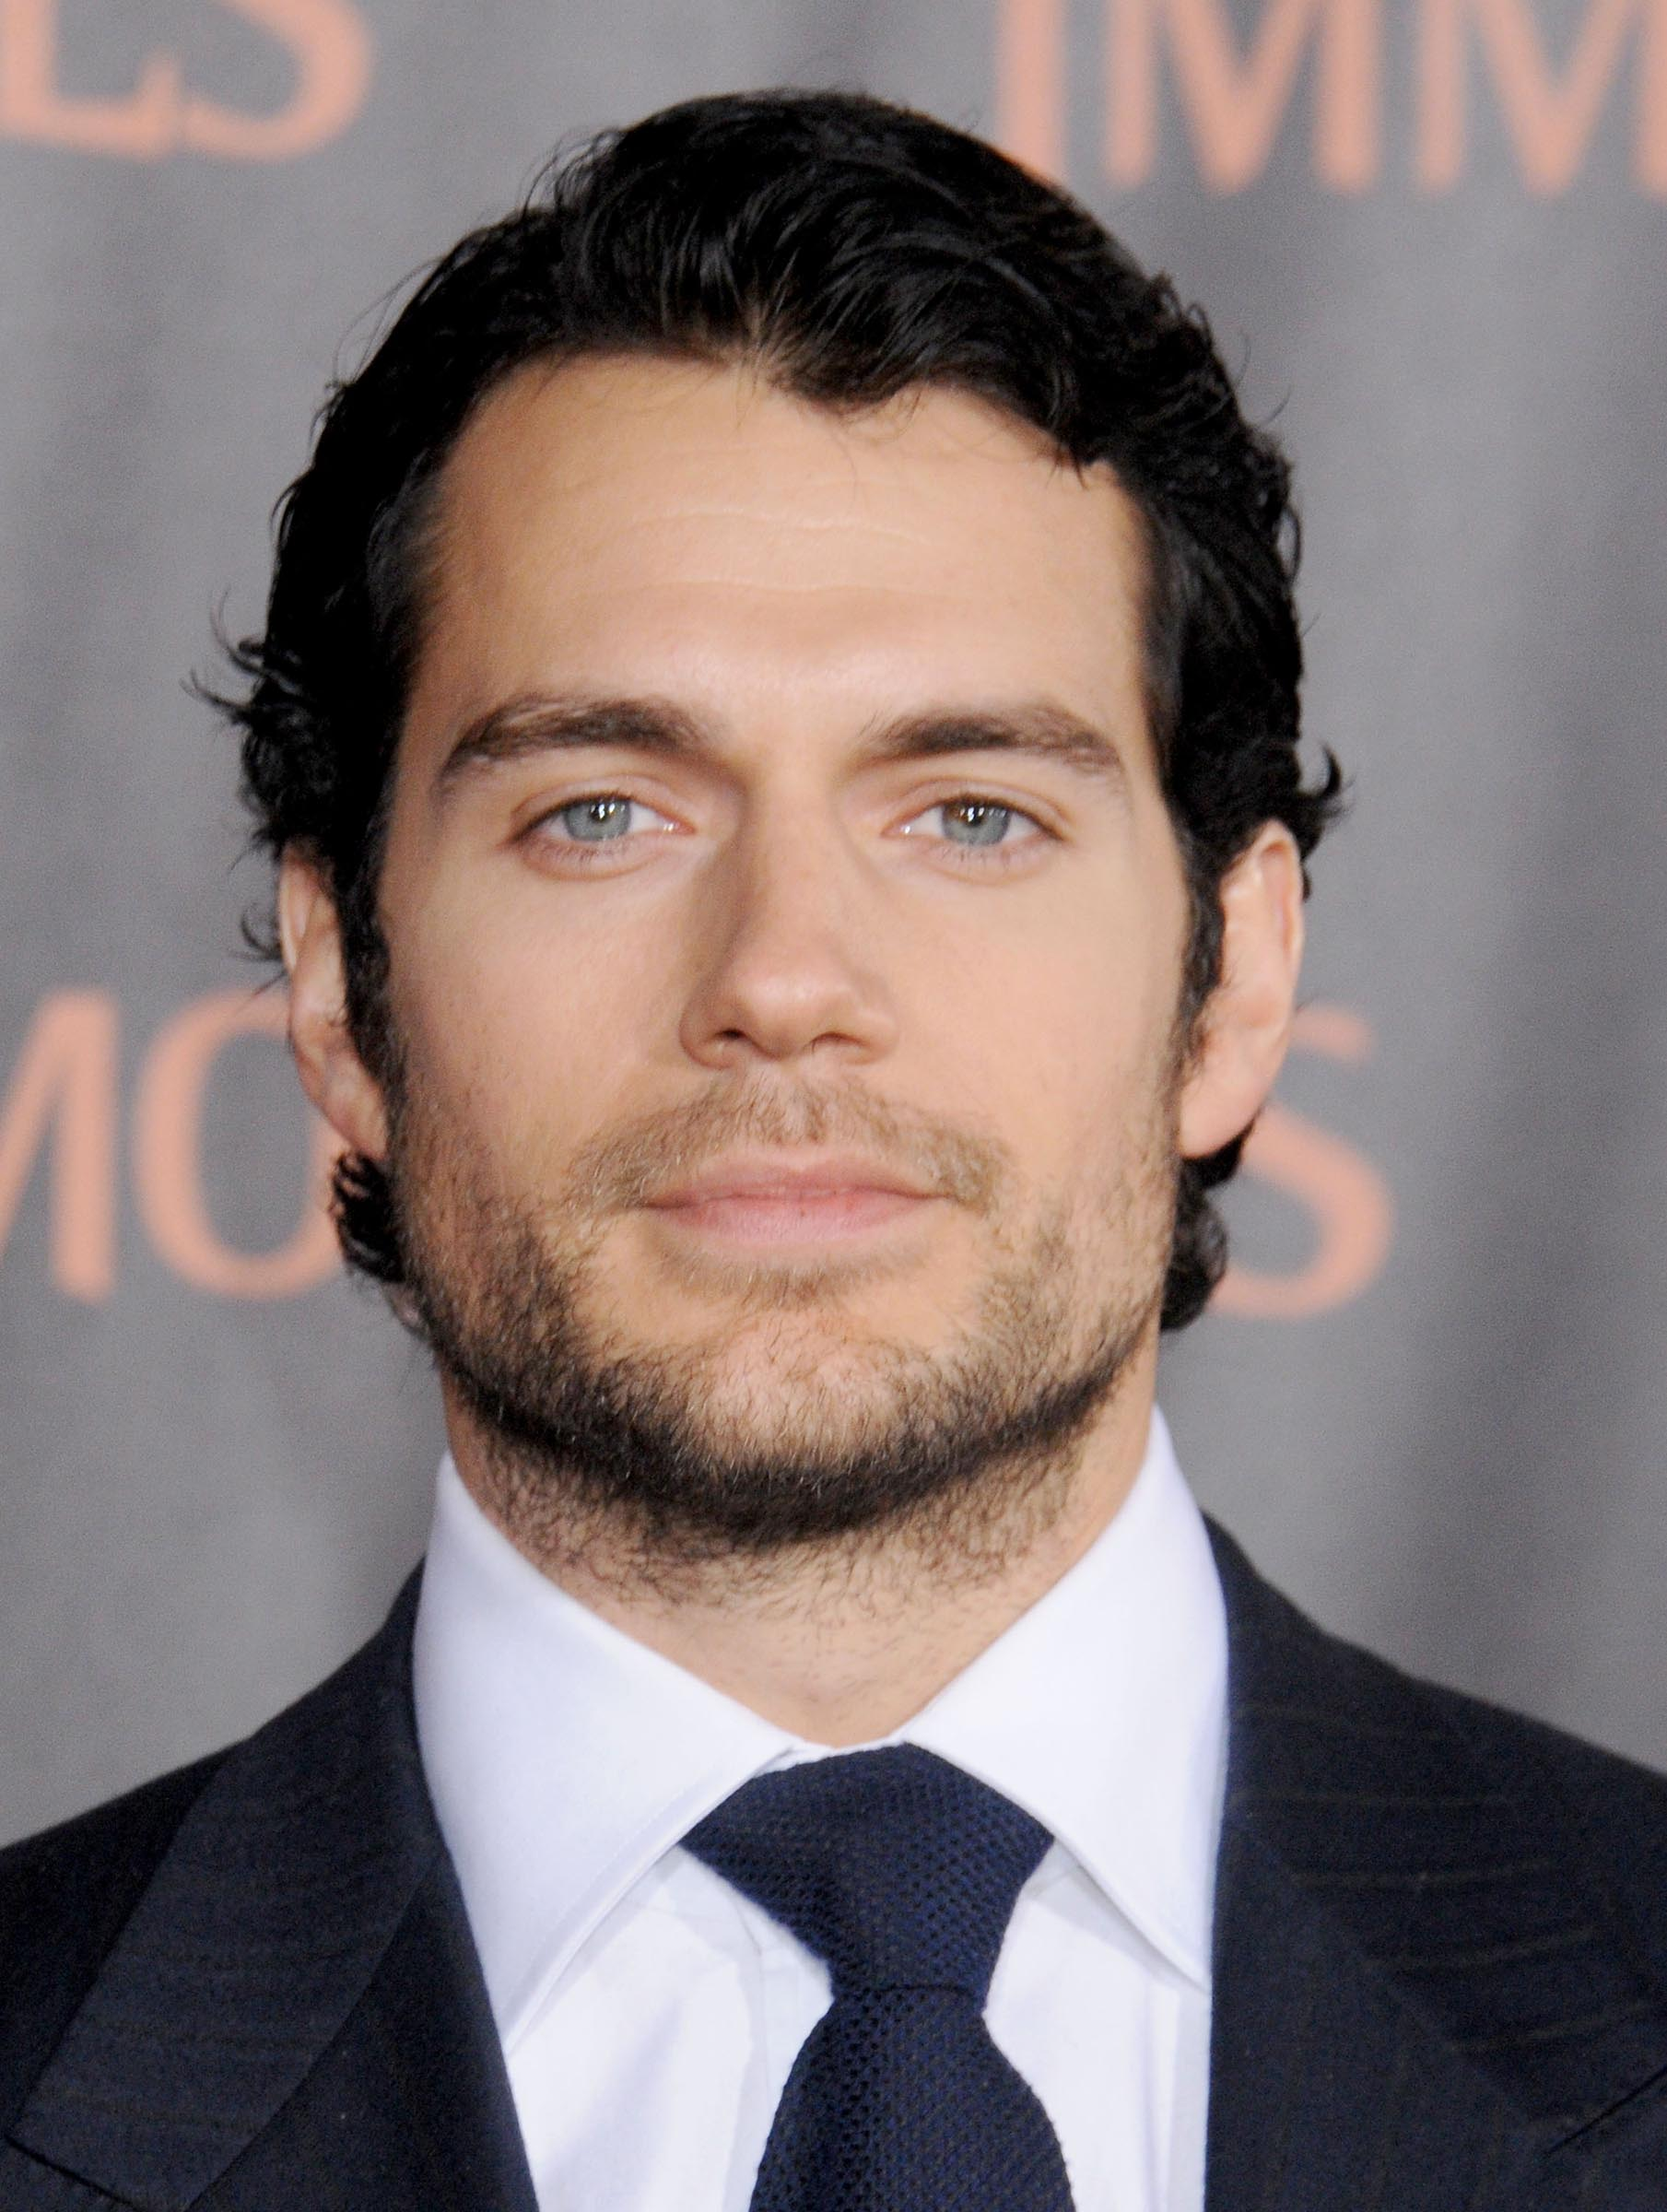 Henry Cavill Biography, Age, Wiki, Parents, Relationship